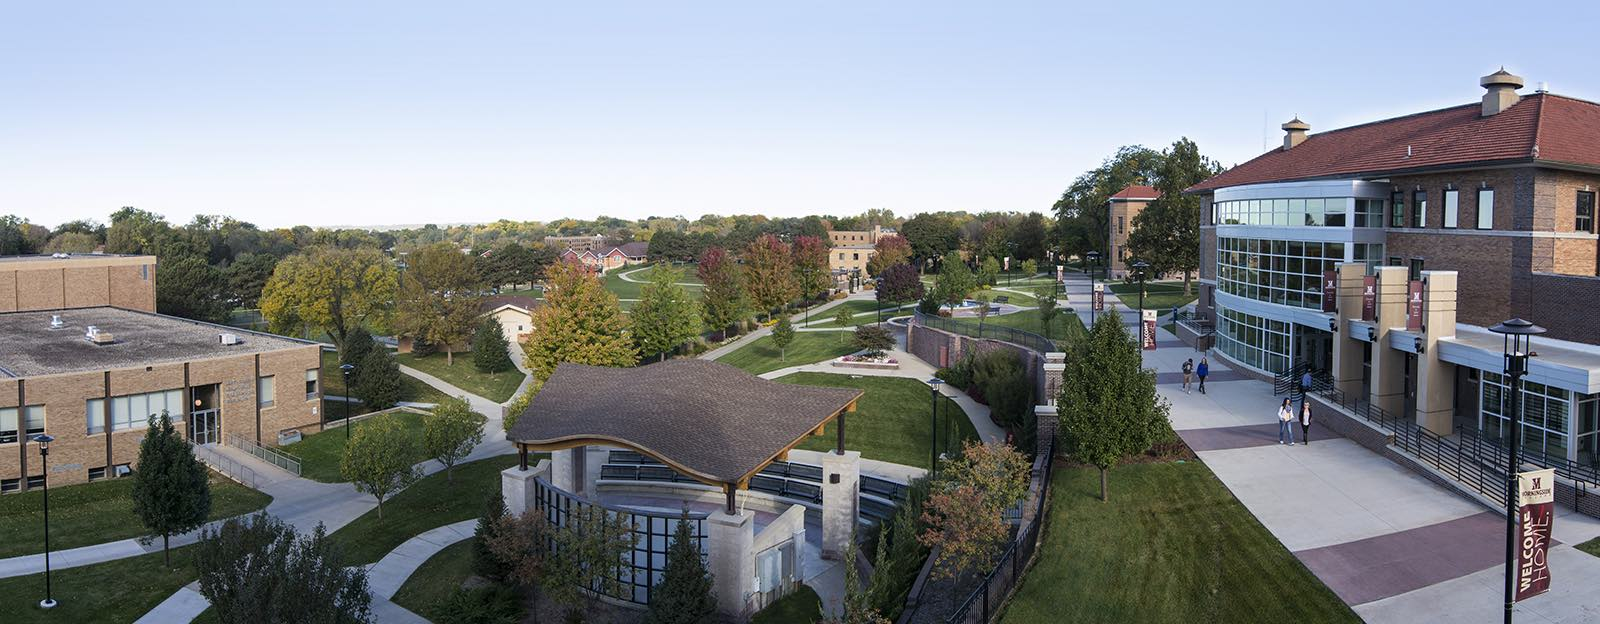 Aerial view of Morningside College campus